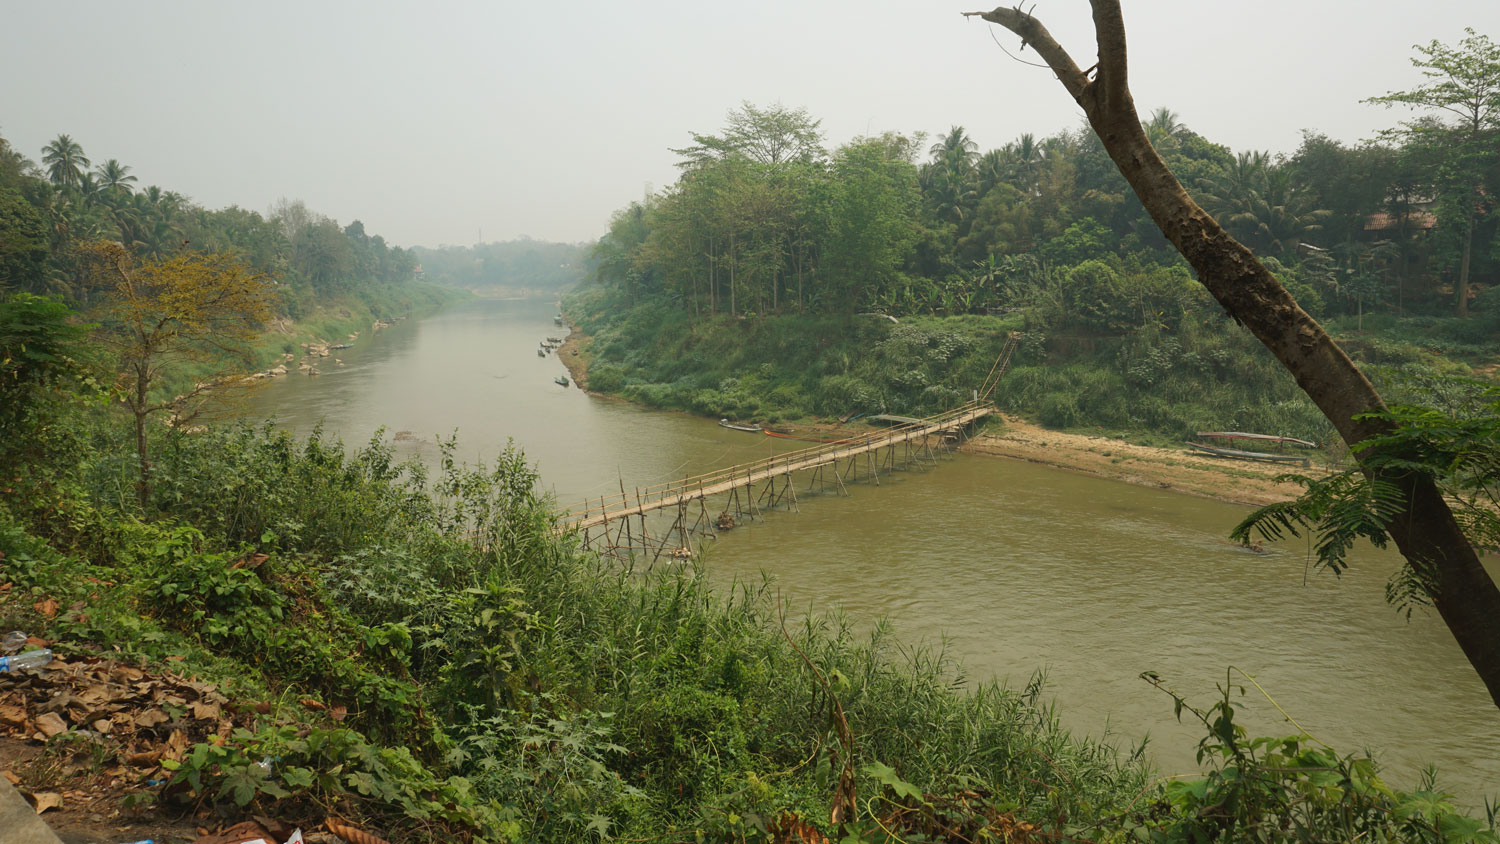 Bamboo bridge over the Mekong River